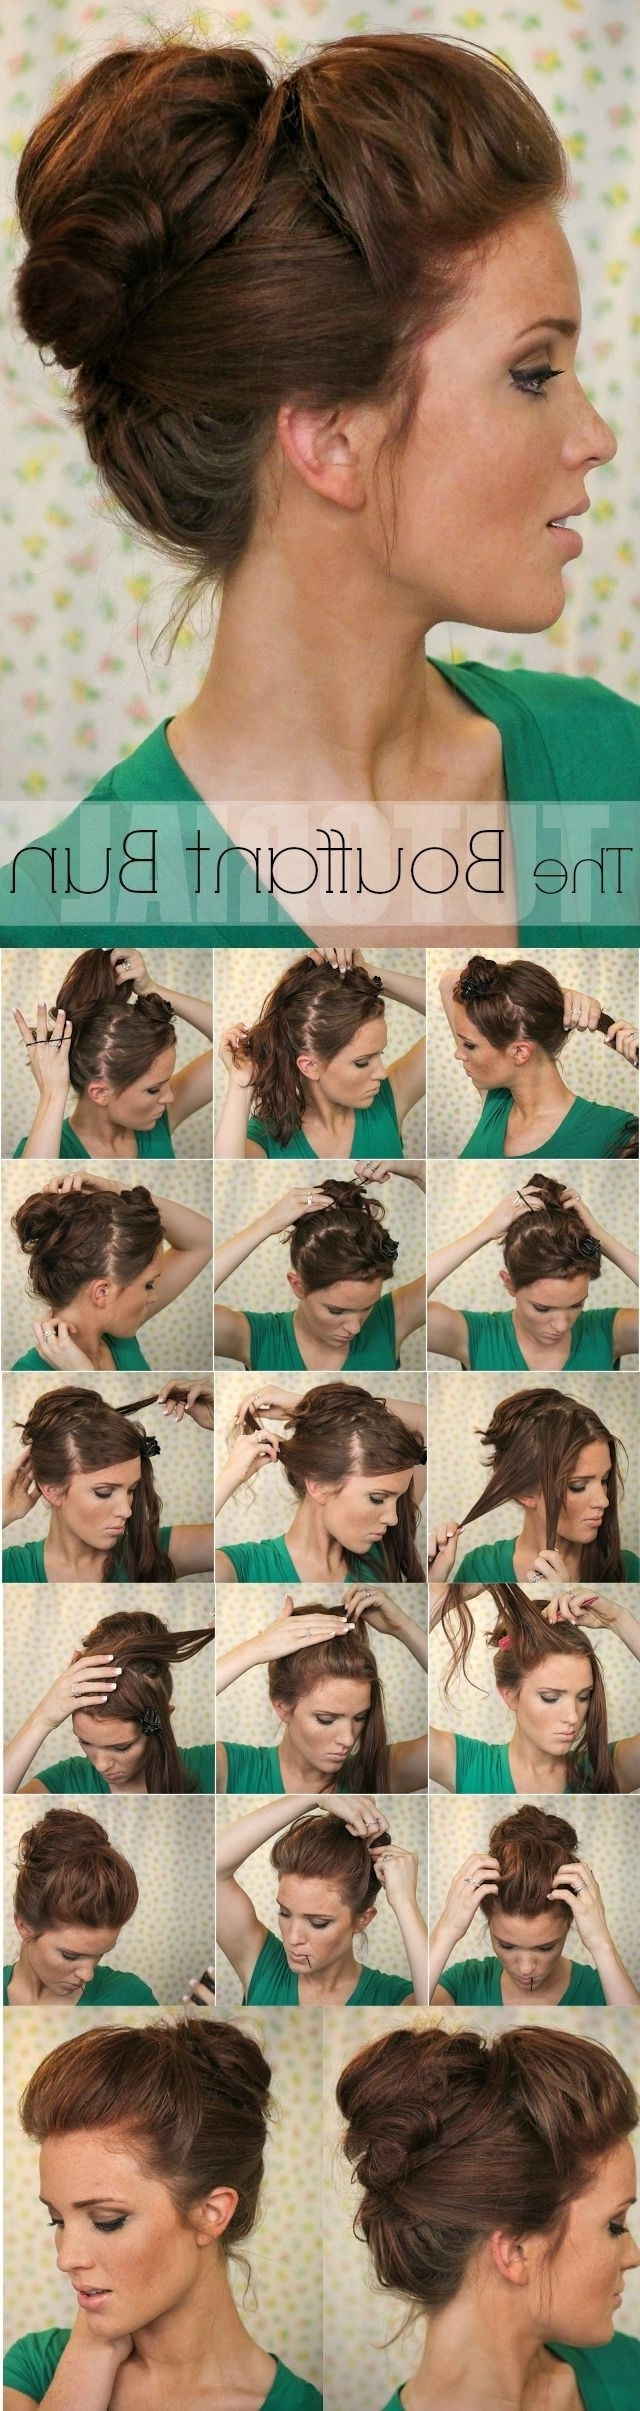 Best And Newest Long Braided Ponytail Hairstyles With Bouffant Intended For 10 Super Easy Updo Hairstyles Tutorials – Popular Haircuts (View 16 of 20)